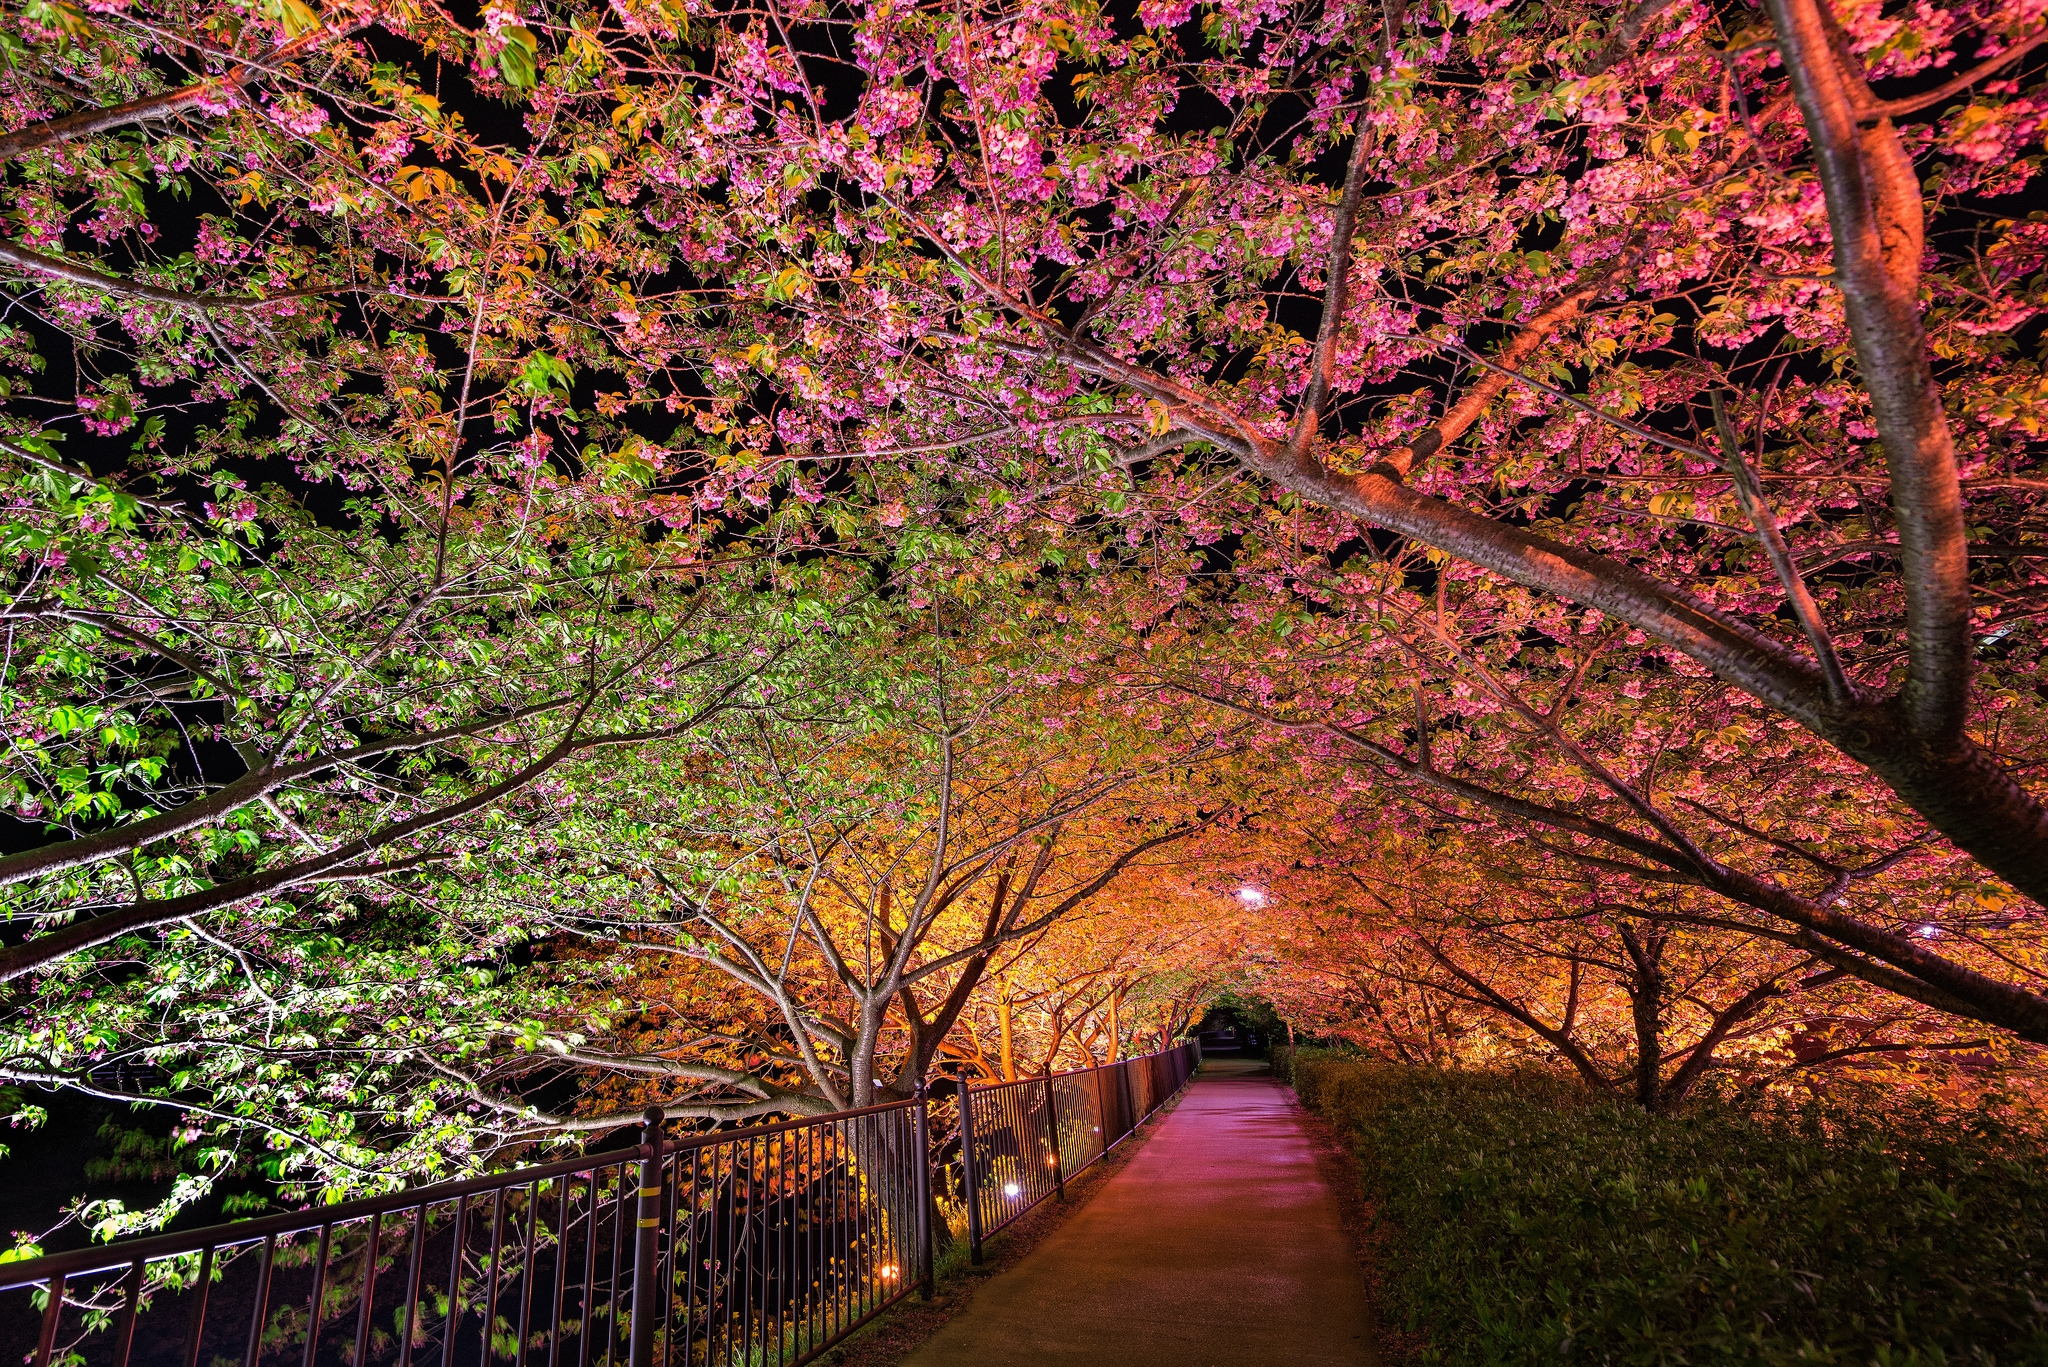 139362 download wallpaper Nature, Night, Spring, Park, Alley, Backlight, Illumination screensavers and pictures for free